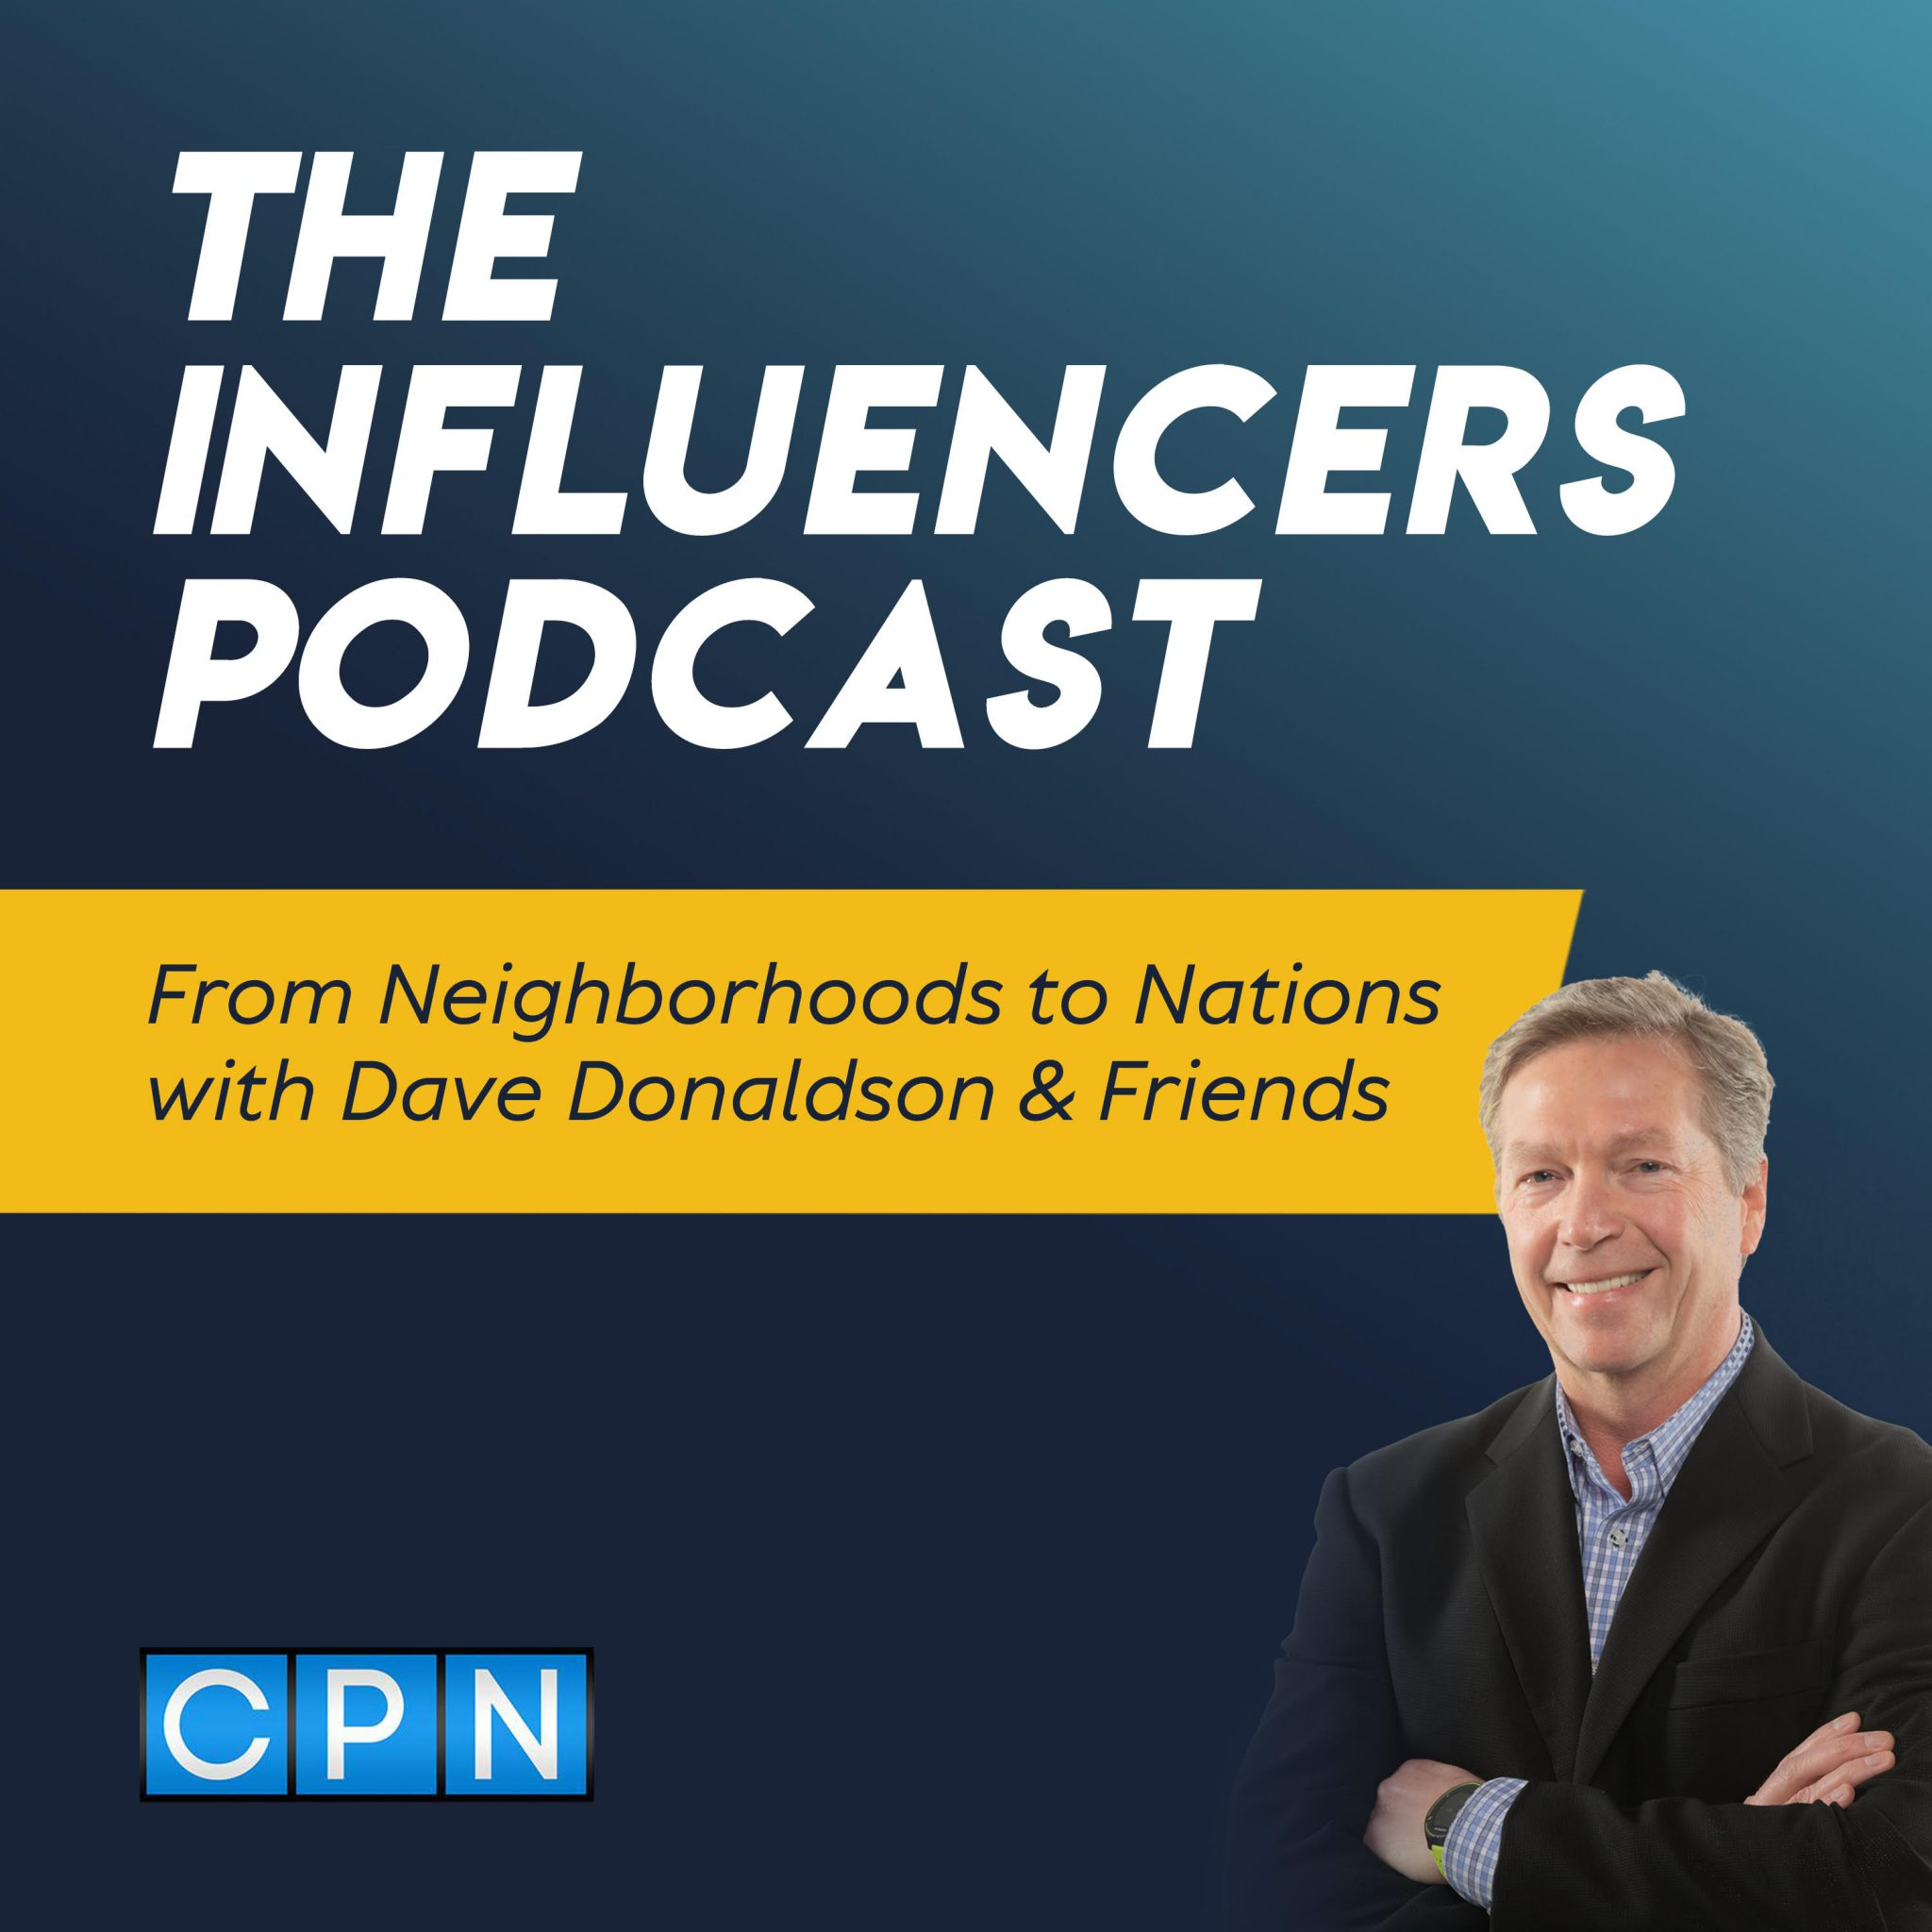 The Influencers Podcast